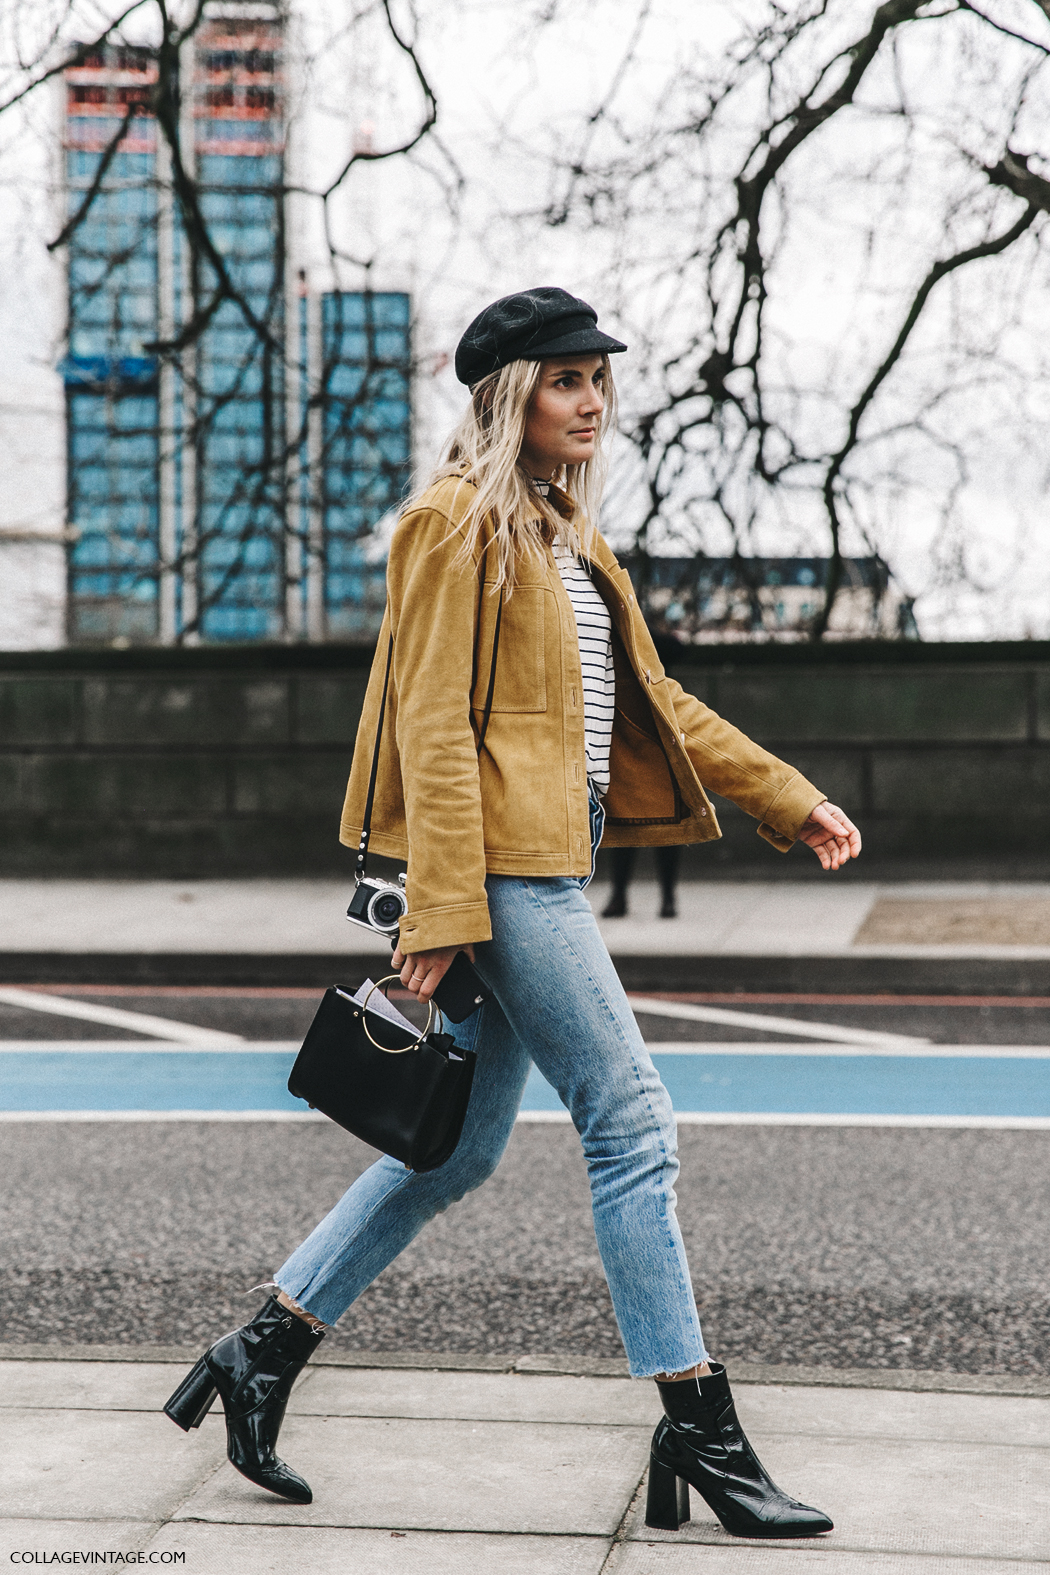 LFW-London_Fashion_Week_Fall_16-Street_Style-Collage_Vintage-Lucy_Williams-Topshop-Yellow_Suede_Jacket-5